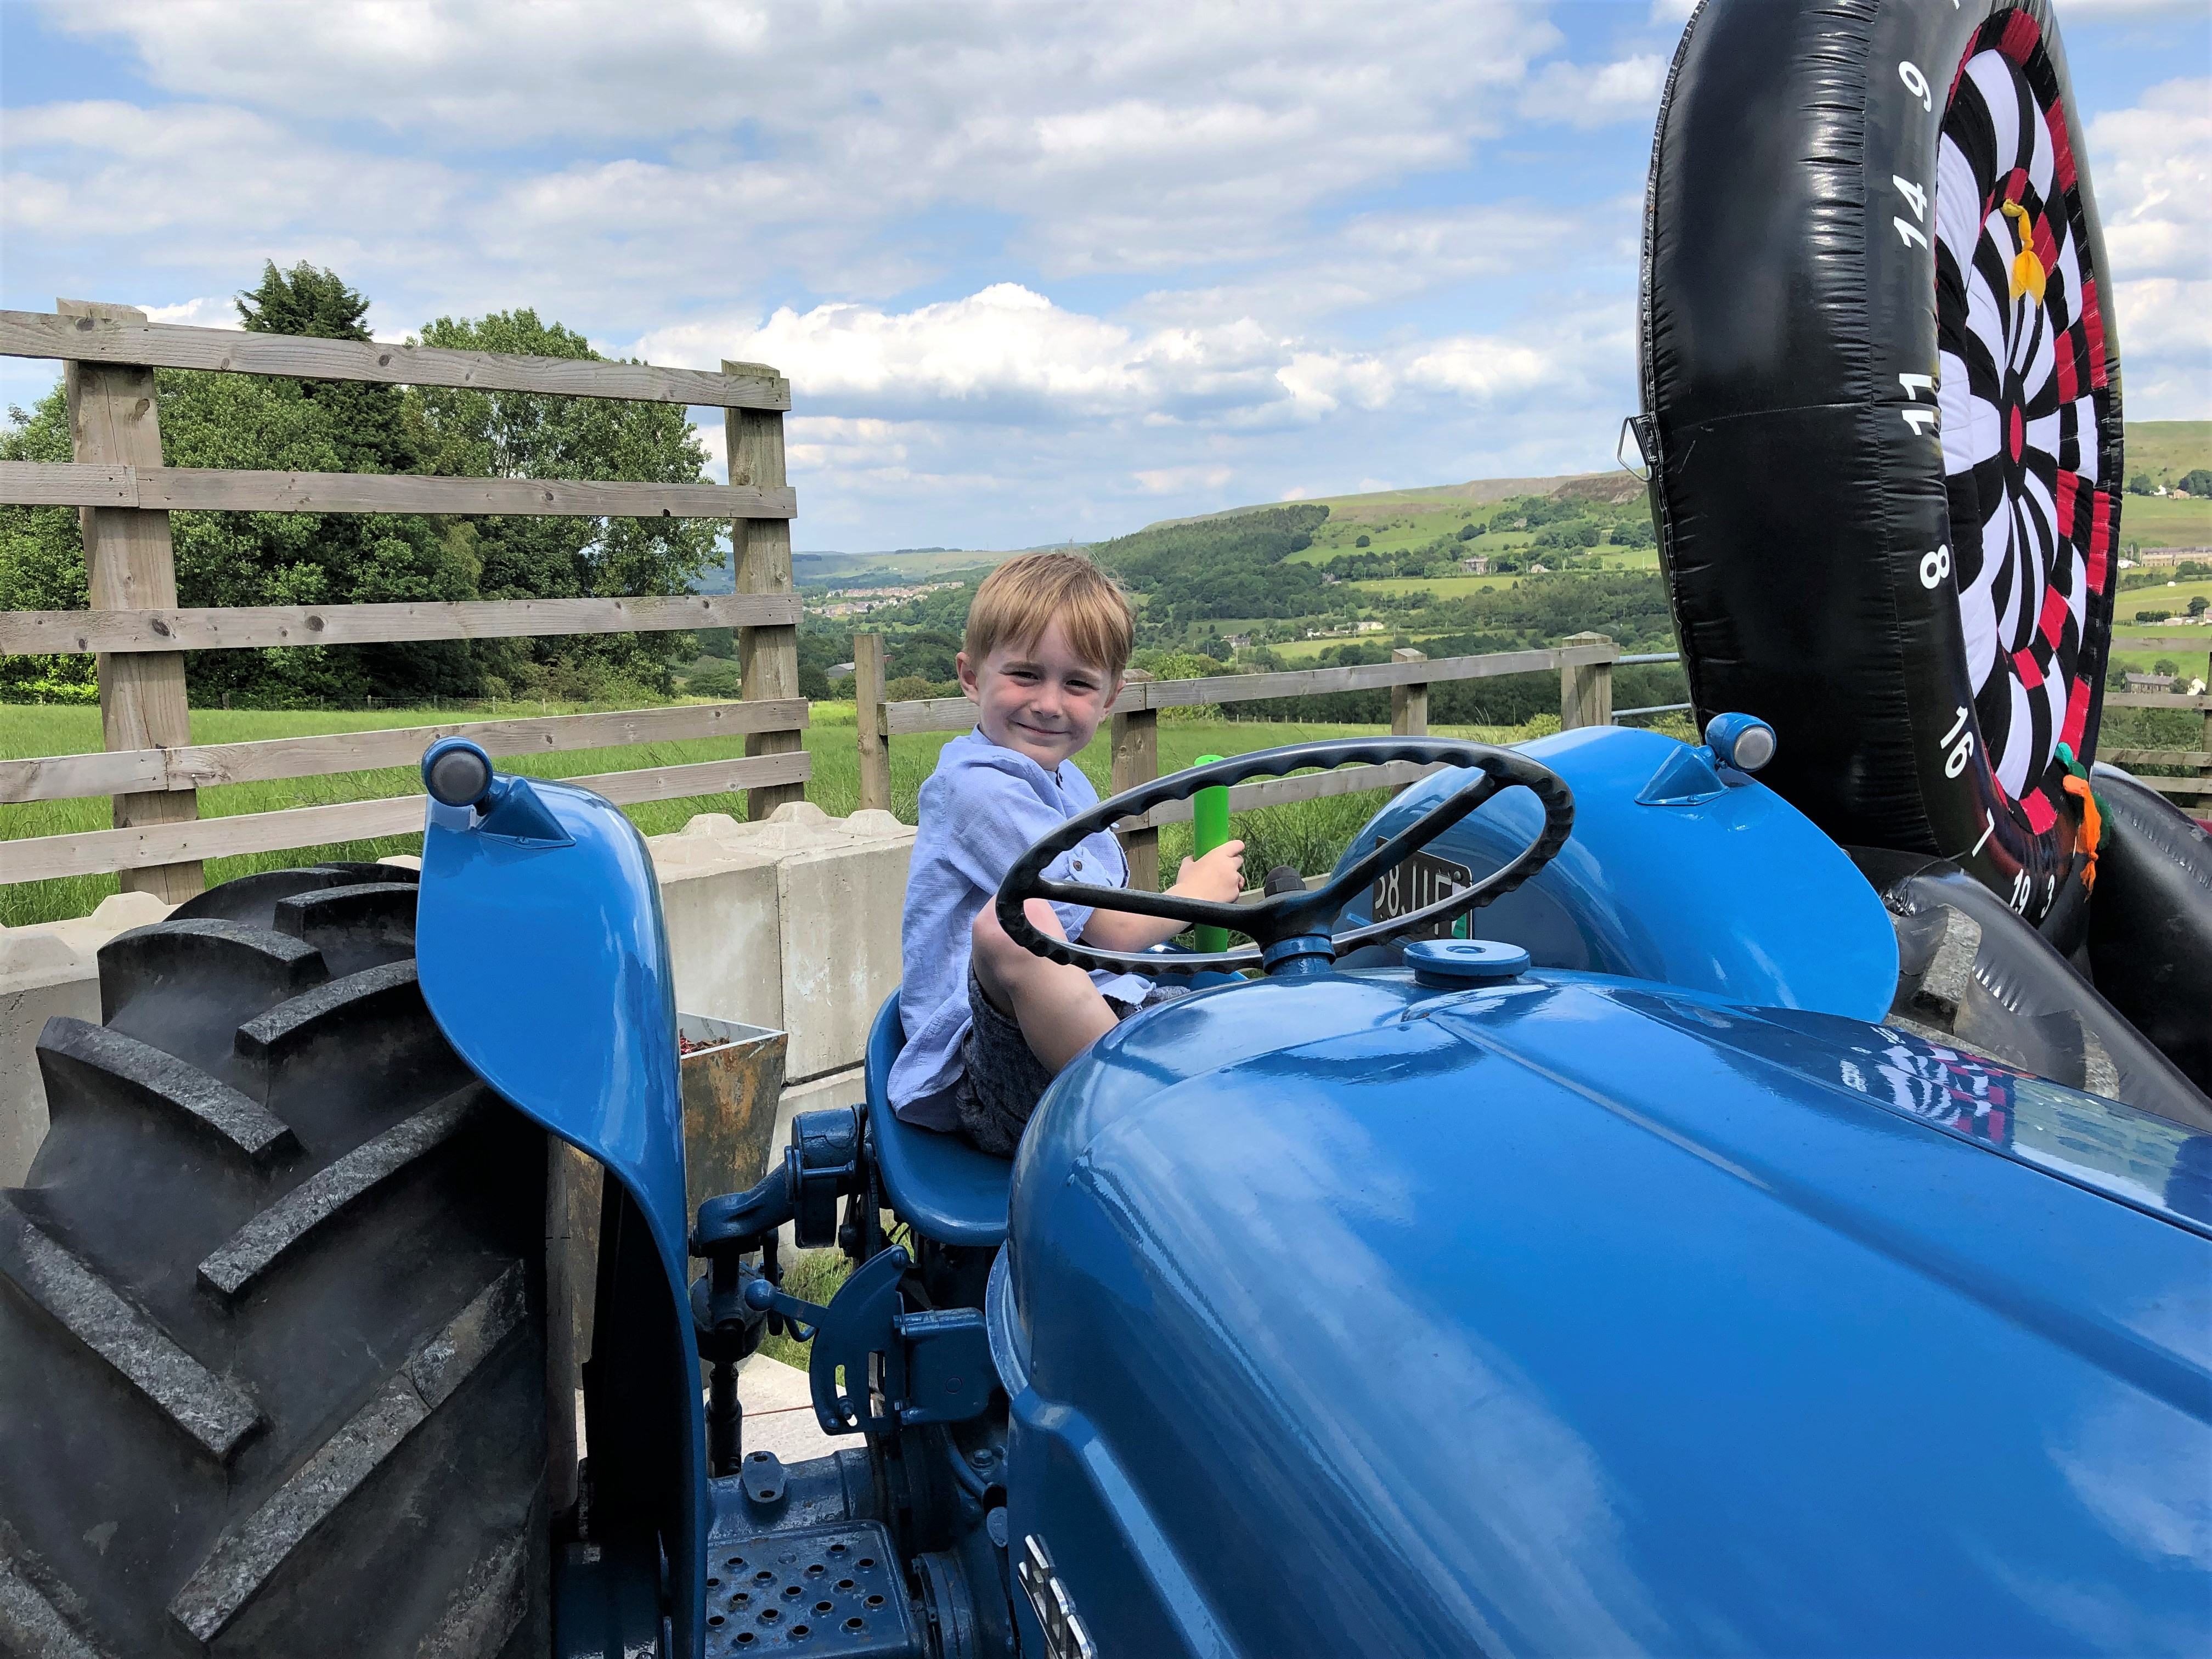 Child sitting on blue tractor